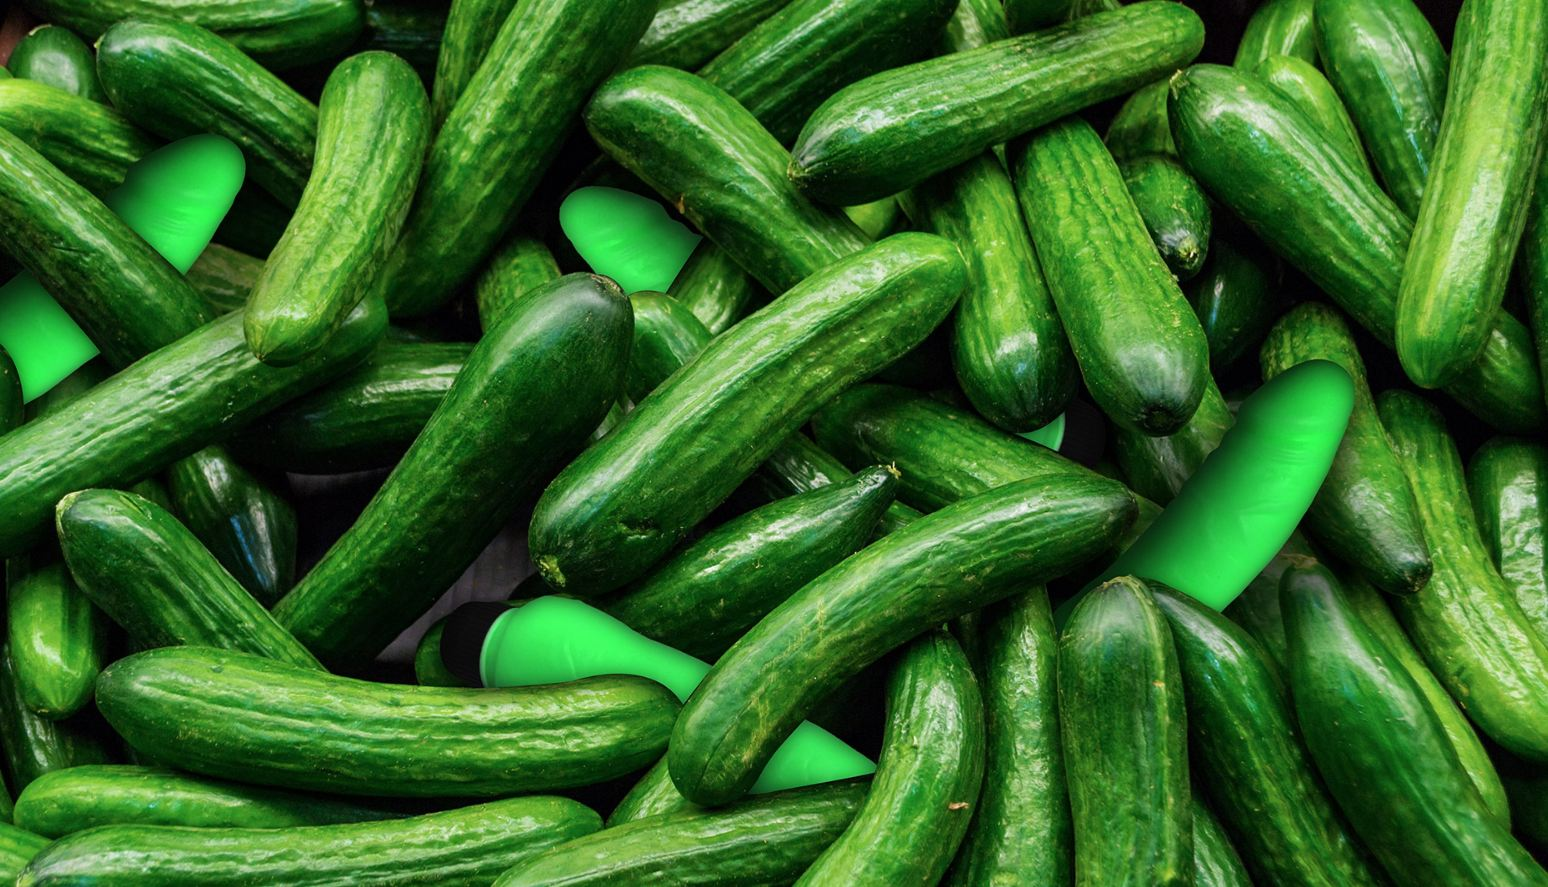 Presenting the perfect surprise Valentine's Day gift: Cucumber or Dildo